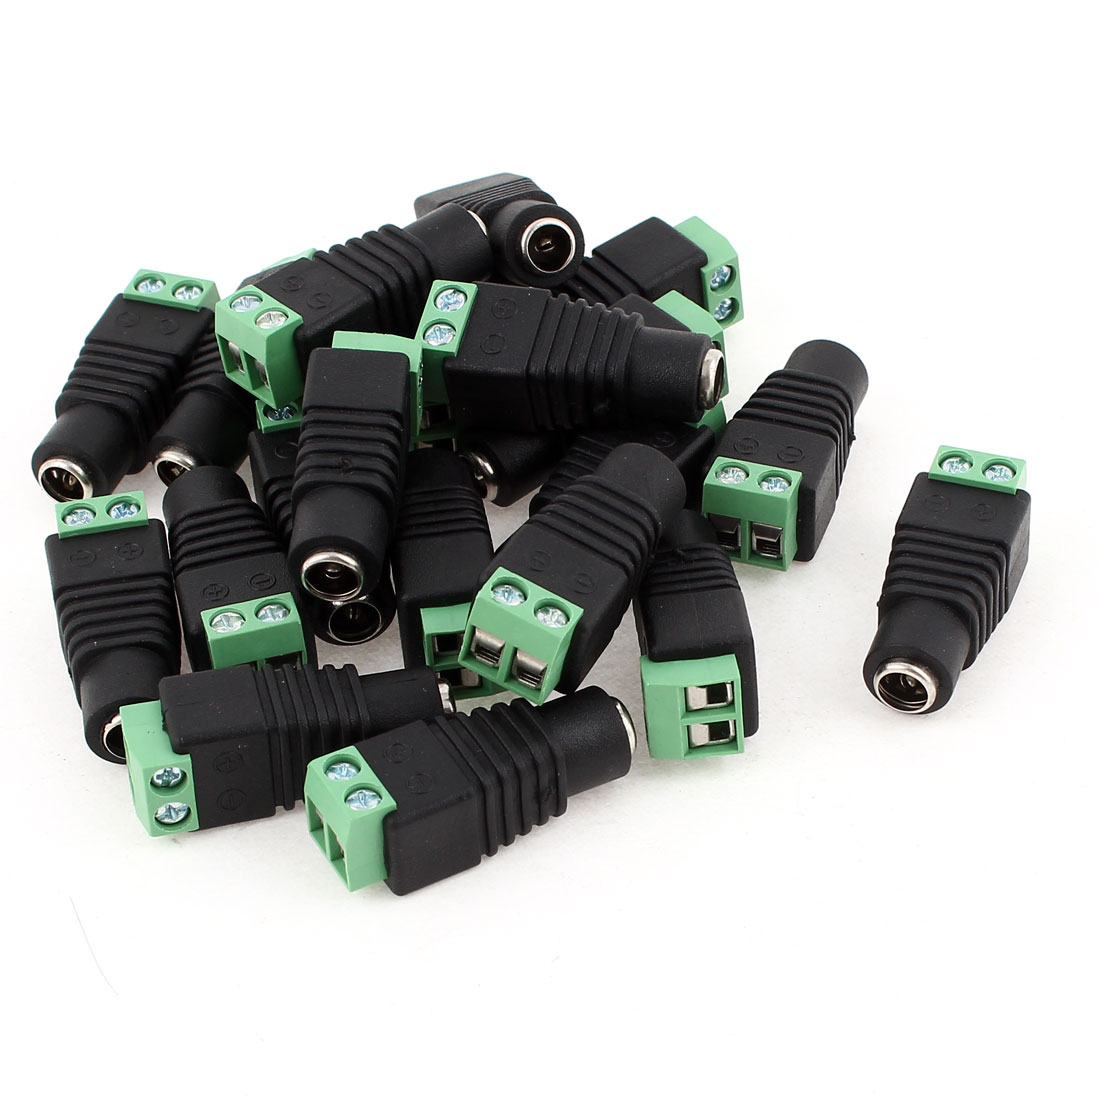 20Pcs DC Power Connector Female Plug Jack Adapter 2.1 x 5.5 mm for CCTV Camera